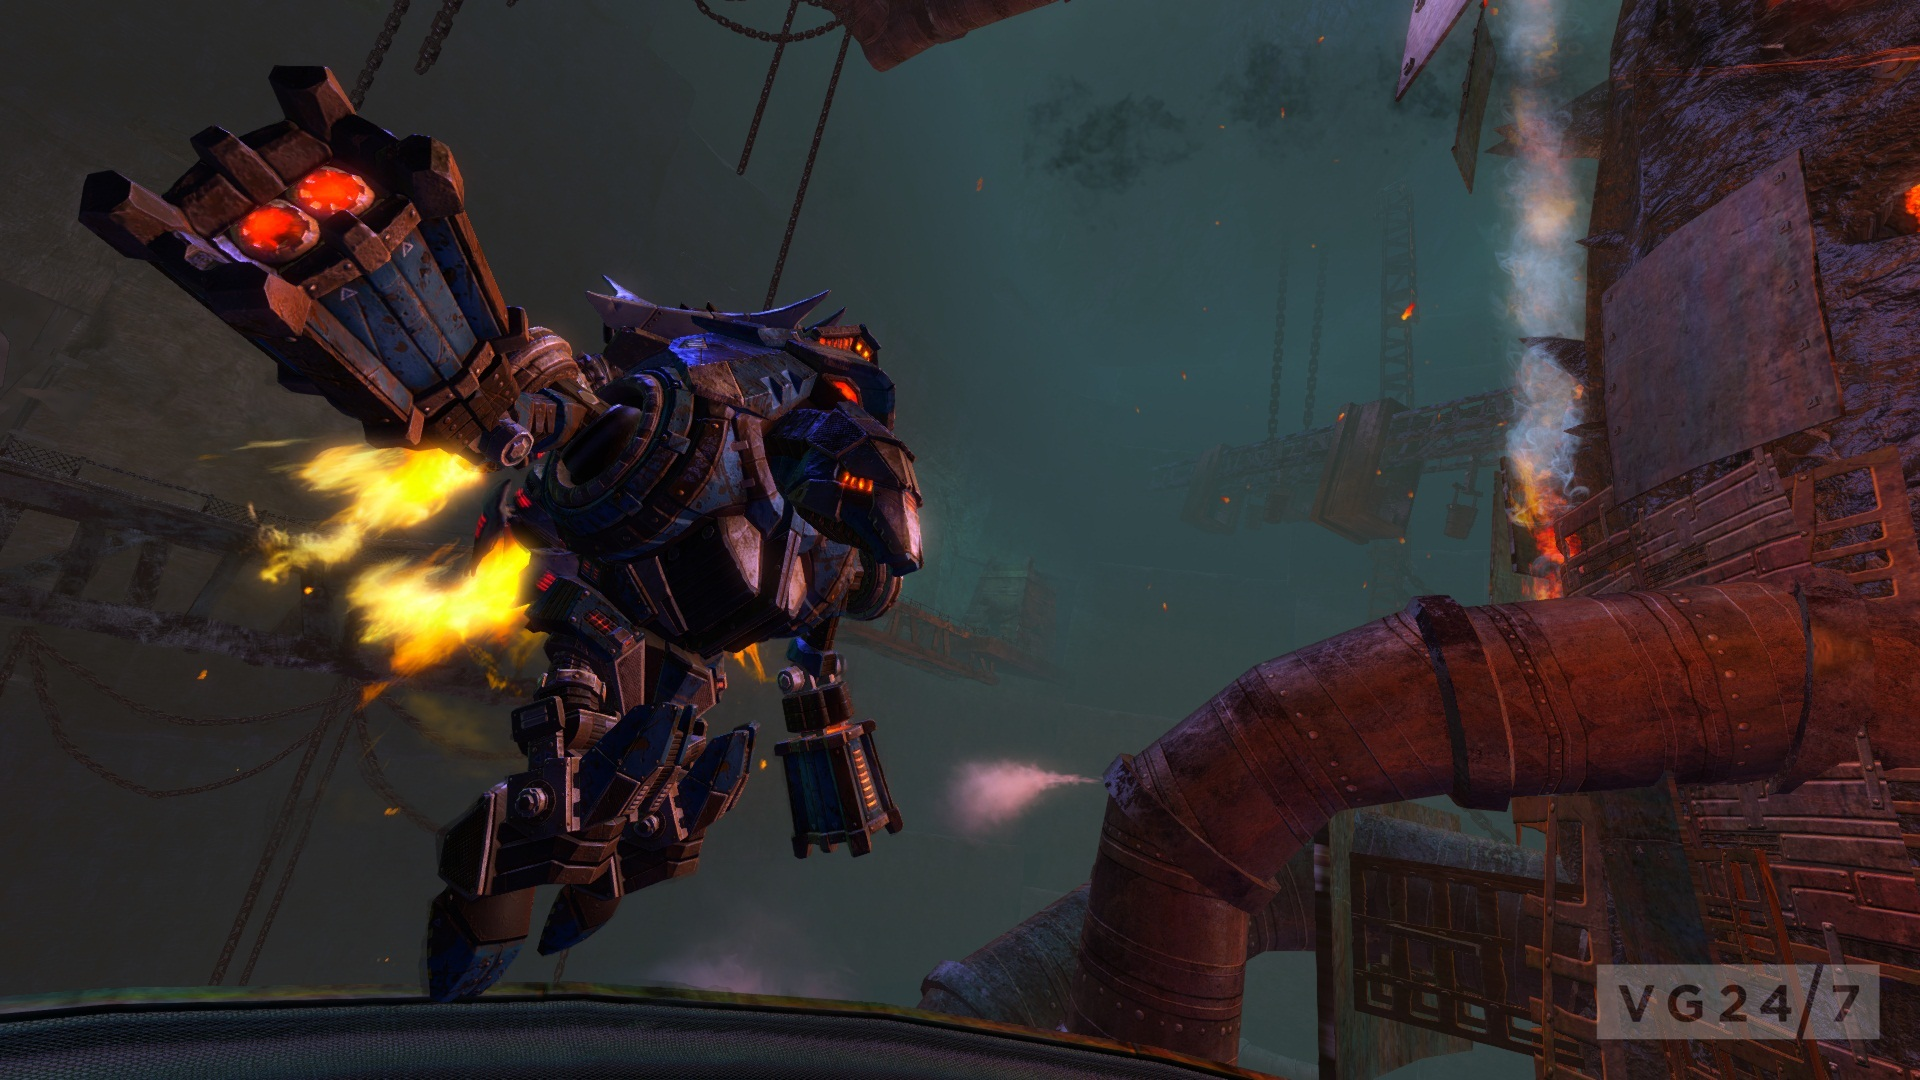 Guild Wars 2: Flame and Frost screens and information released - VG247